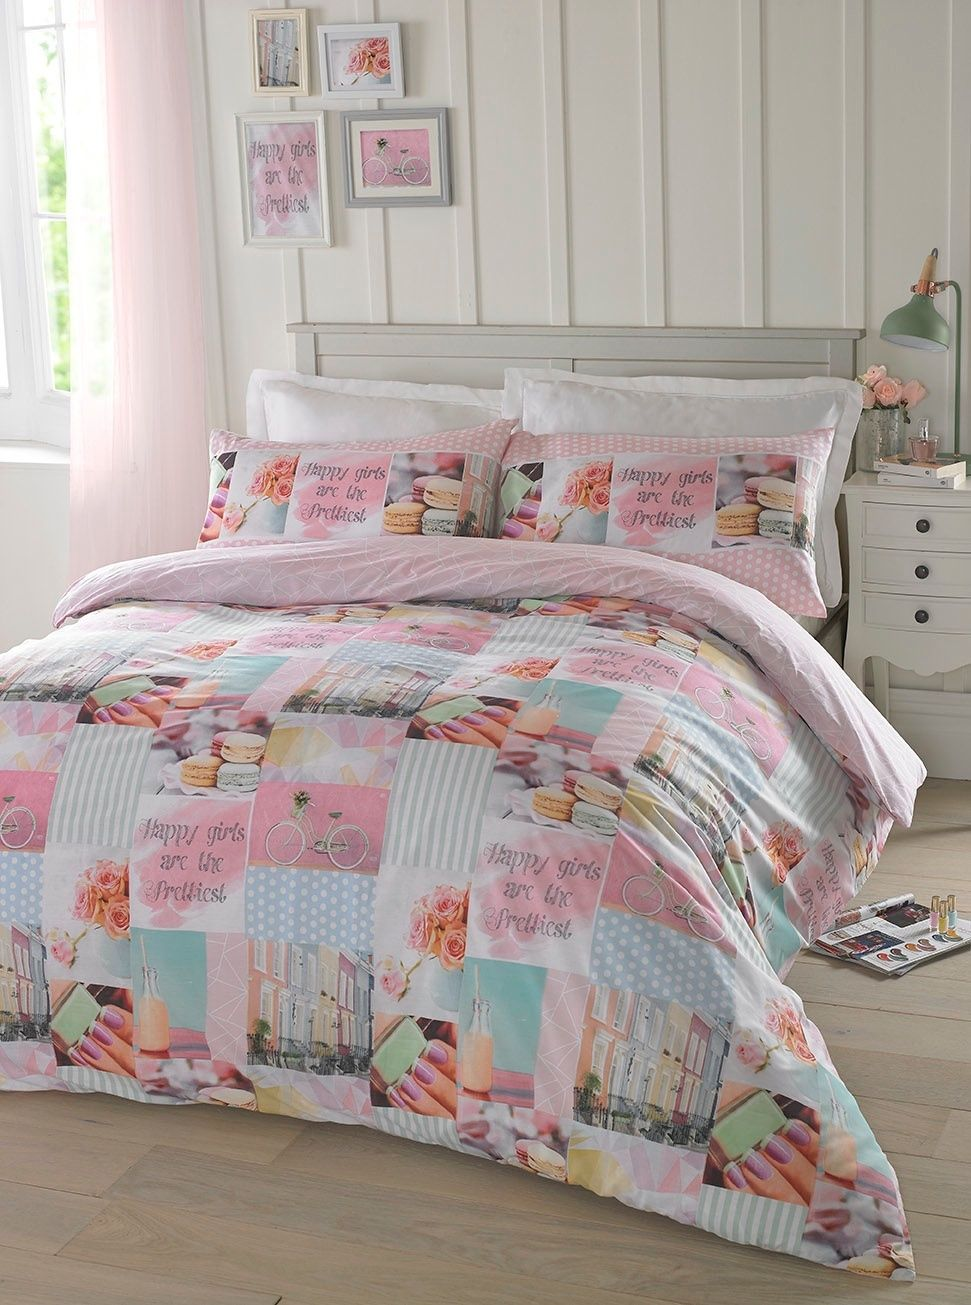 patch itm floral bed bedding patchwork girls cover duvet quilt butterfly pink lilac set white